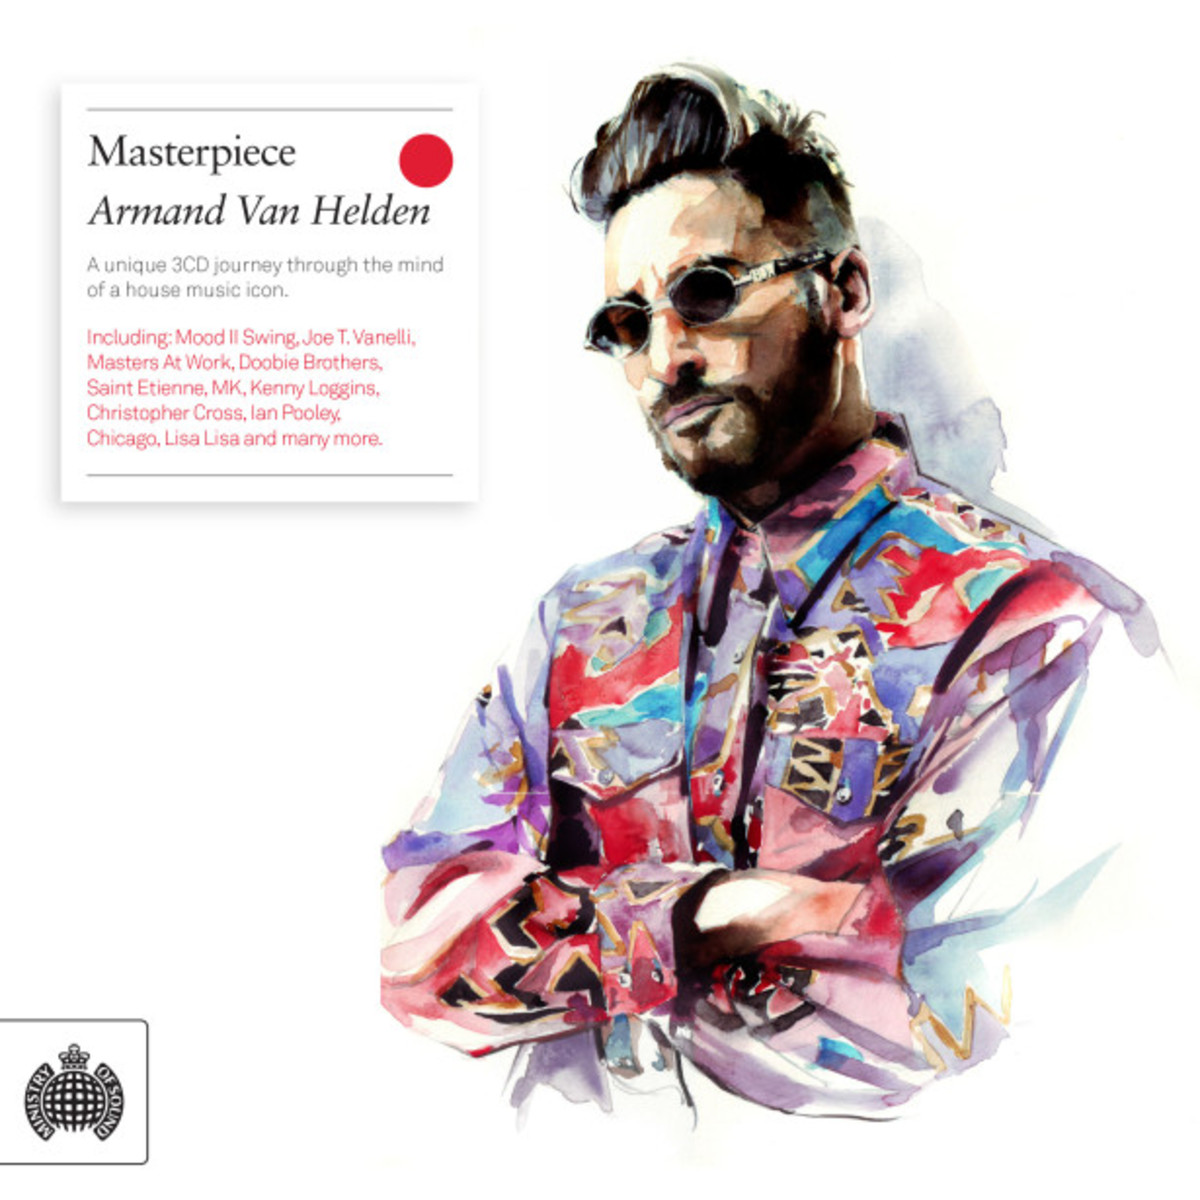 The Armand van Helden Masterpiece Minimix Bucks The Trend